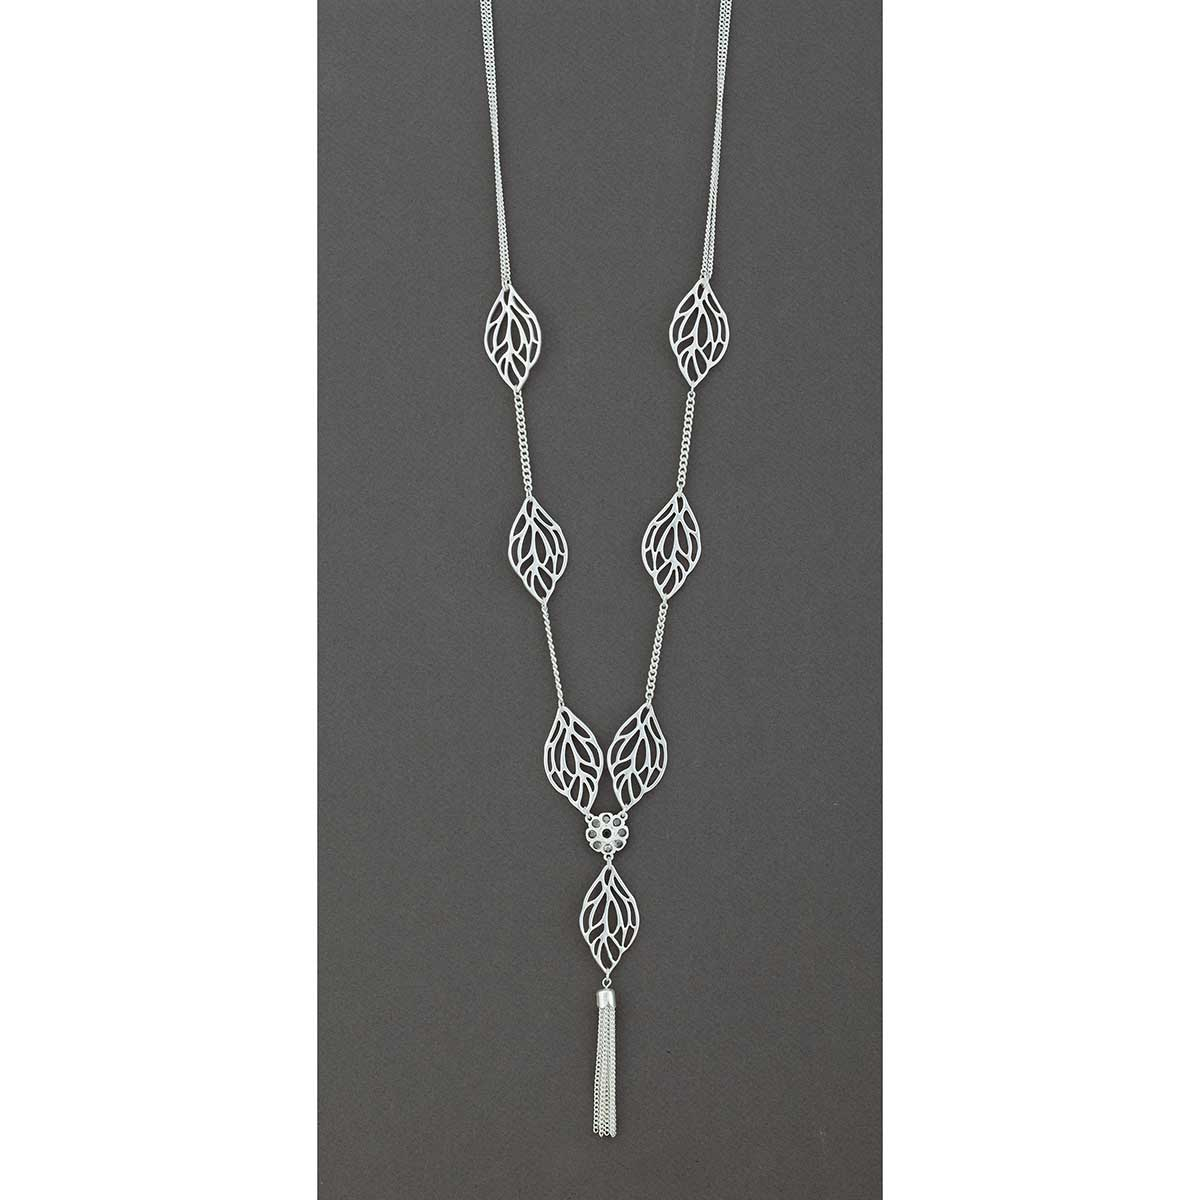 "Silver 7 Leaf with Tassel on Chain Necklace 16""-19"""